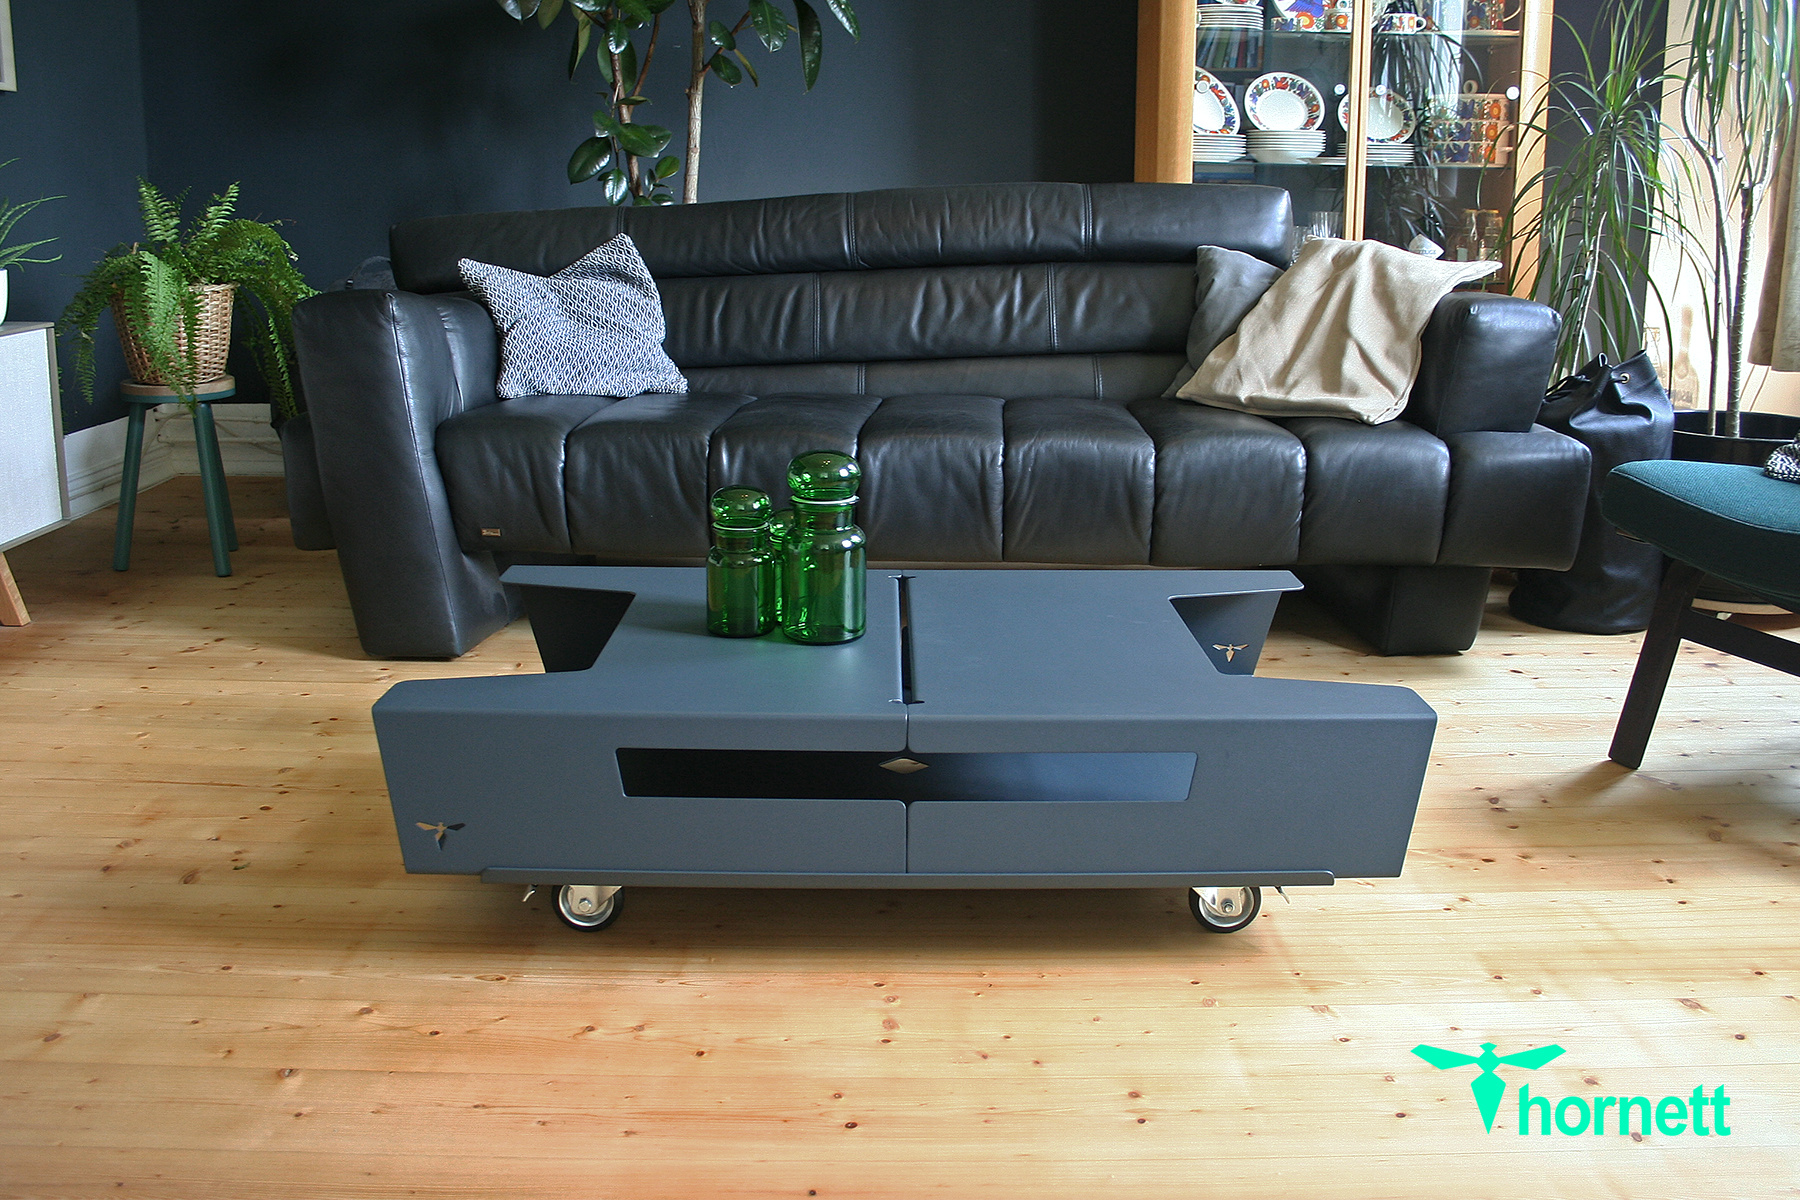 hornett ally twintop coffeetable anthracite